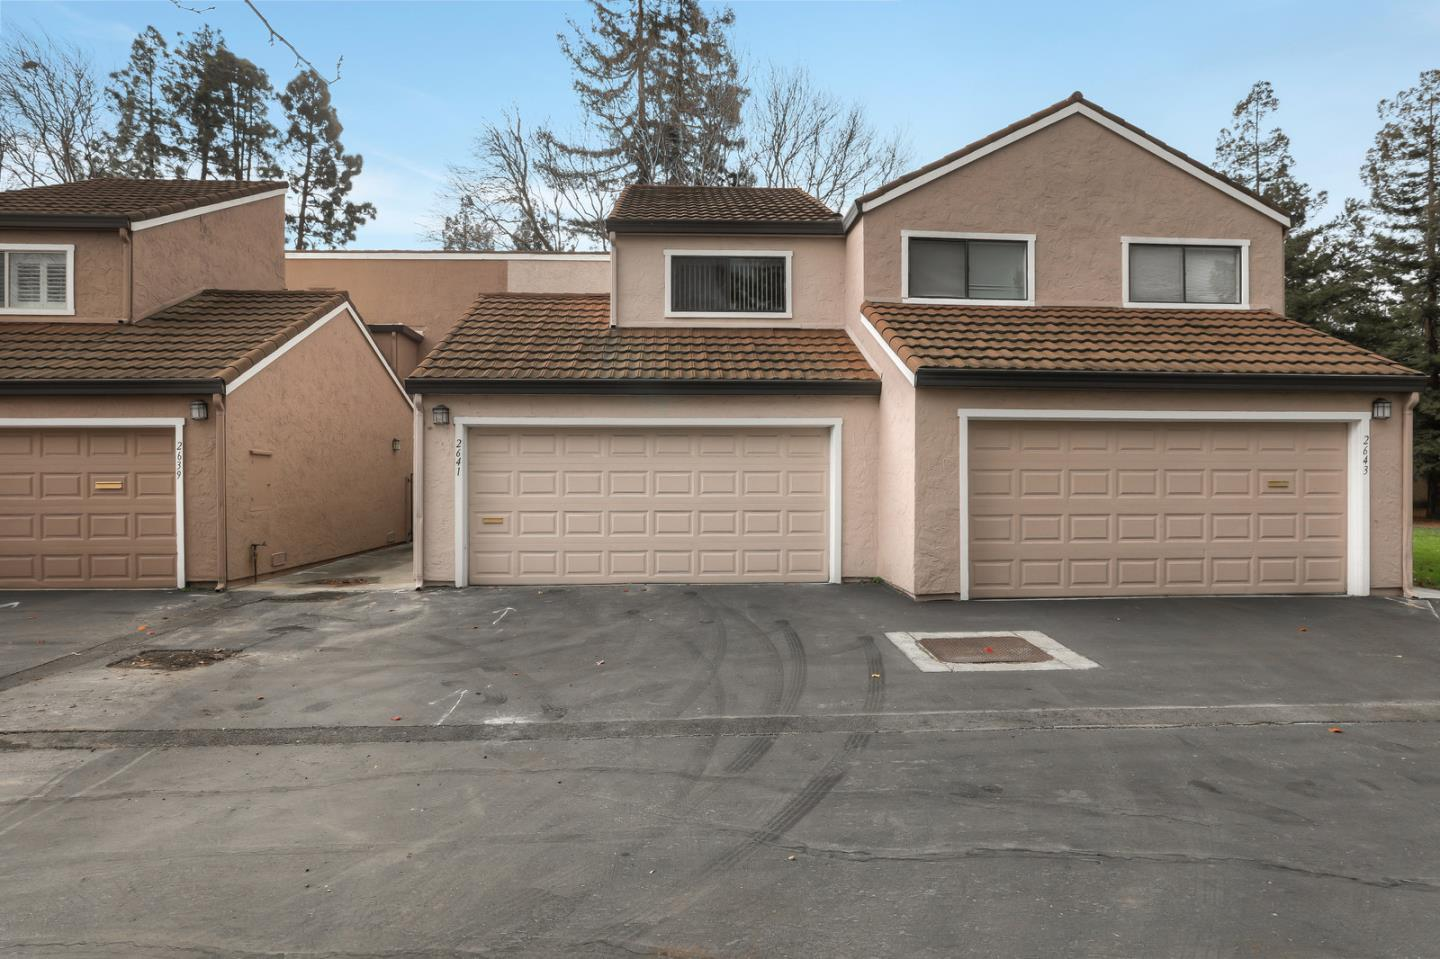 One of Santa Clara 3 Bedroom Homes for Sale at 2641 Kerryshire LN